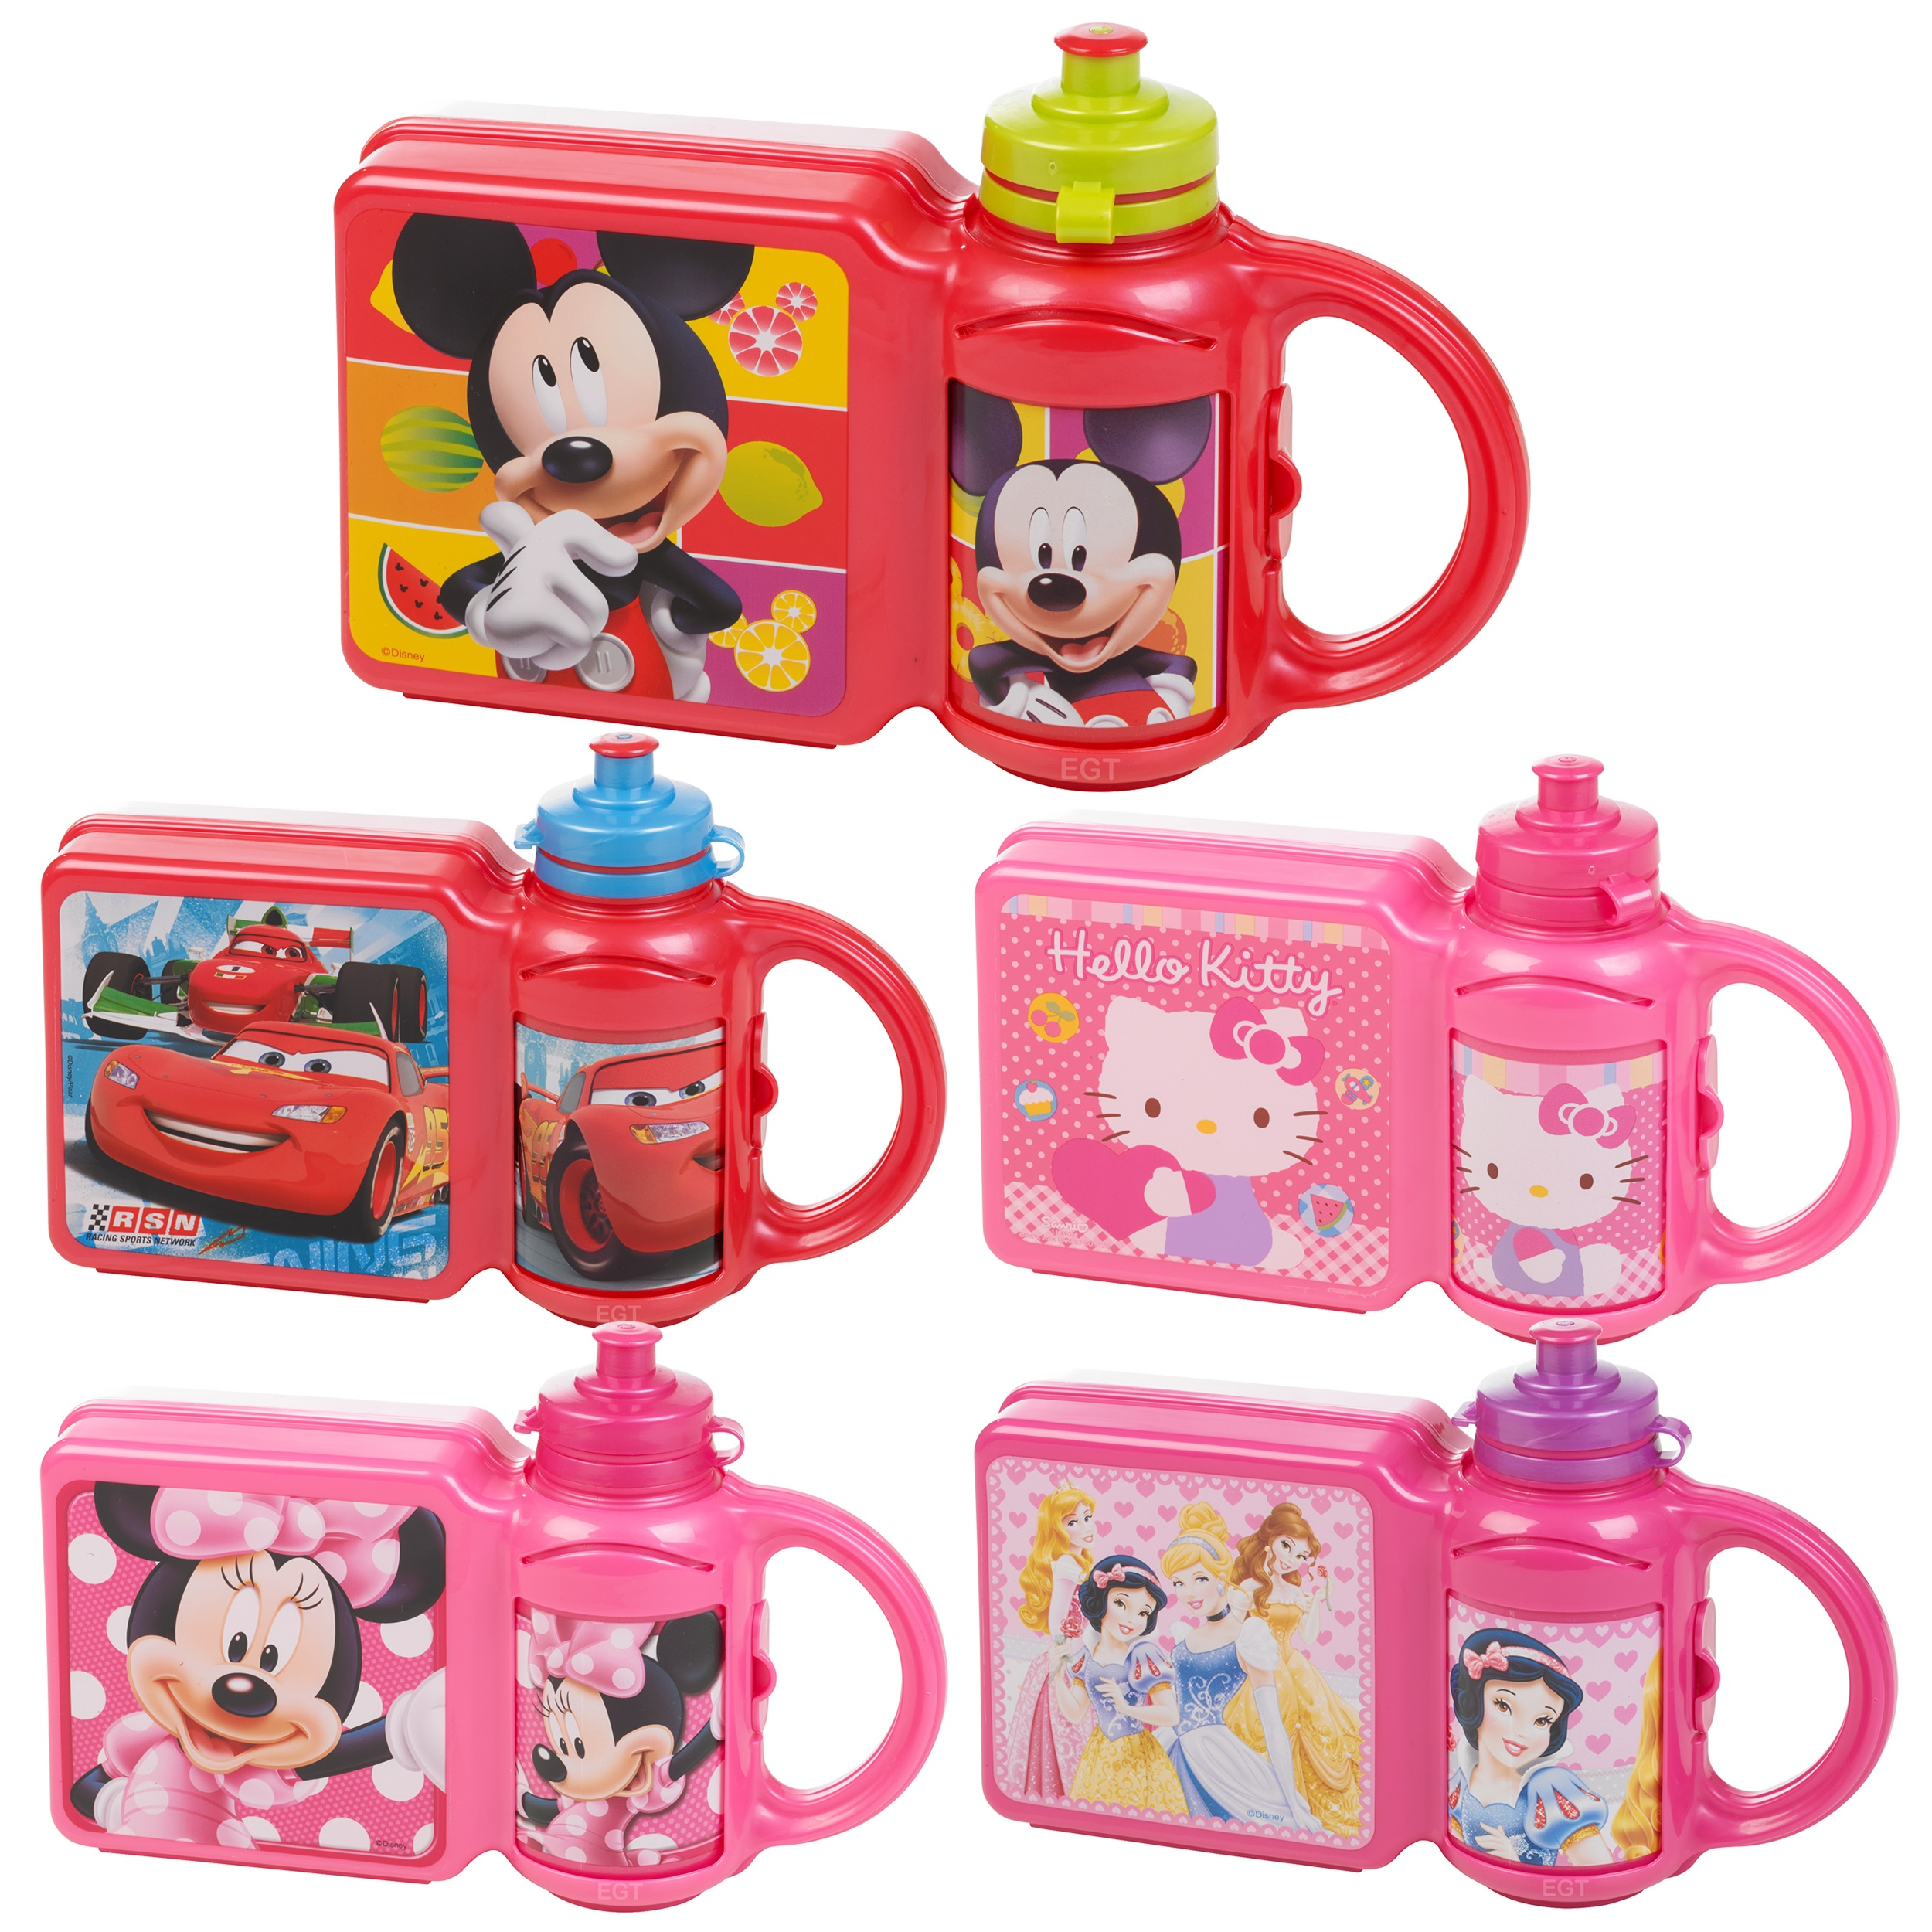 childrens disney lunch food box non spill sports bottle school travel bag set ebay. Black Bedroom Furniture Sets. Home Design Ideas